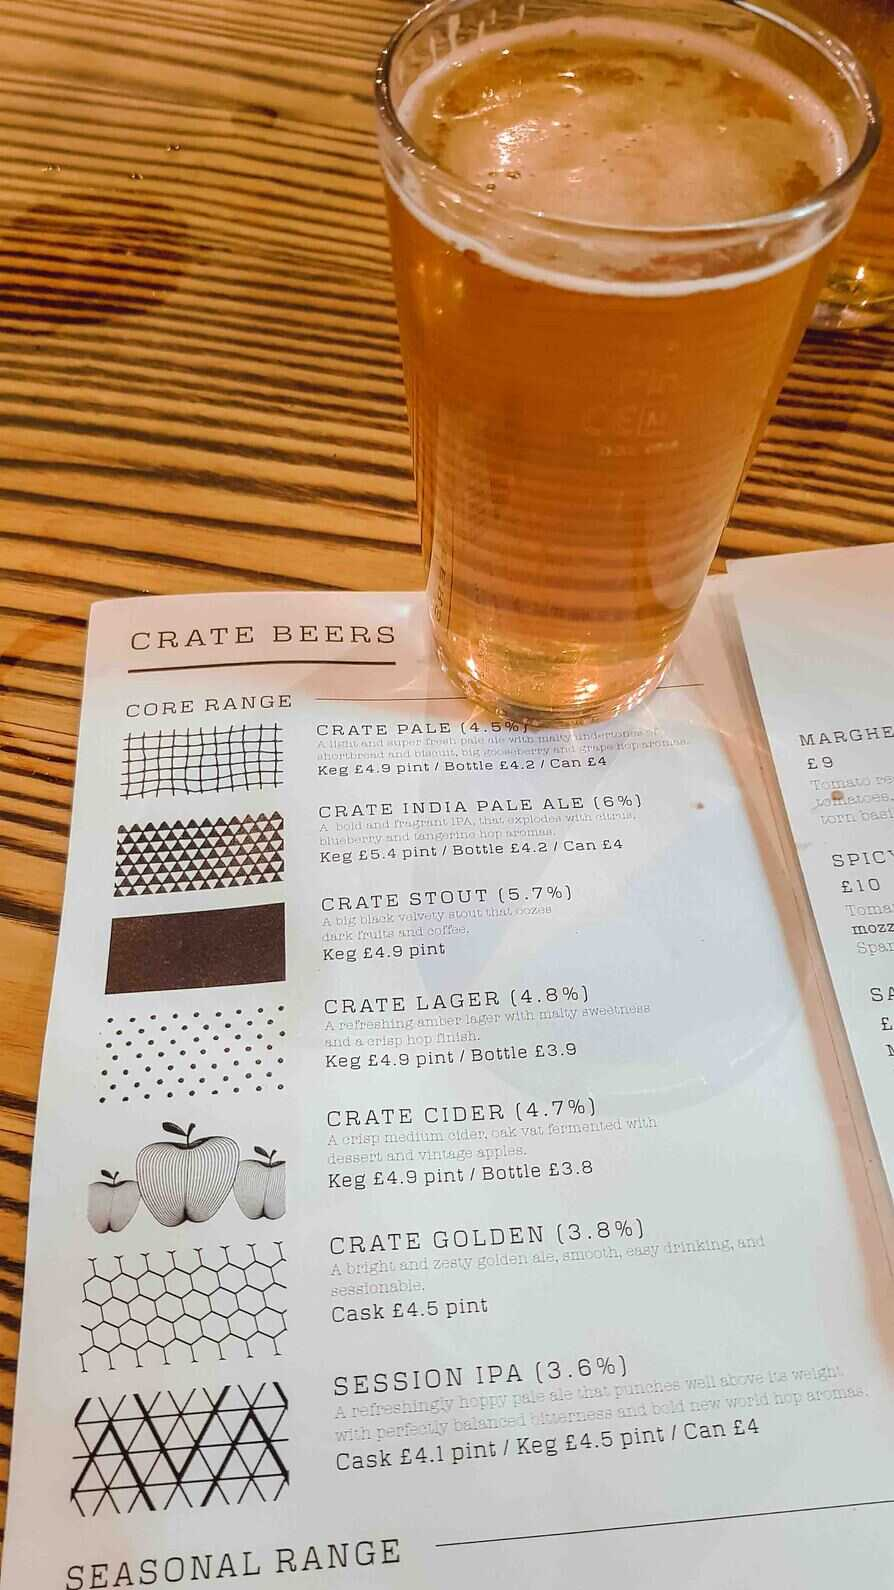 Craft Beer at Crate Brewery in Hackney Wick London